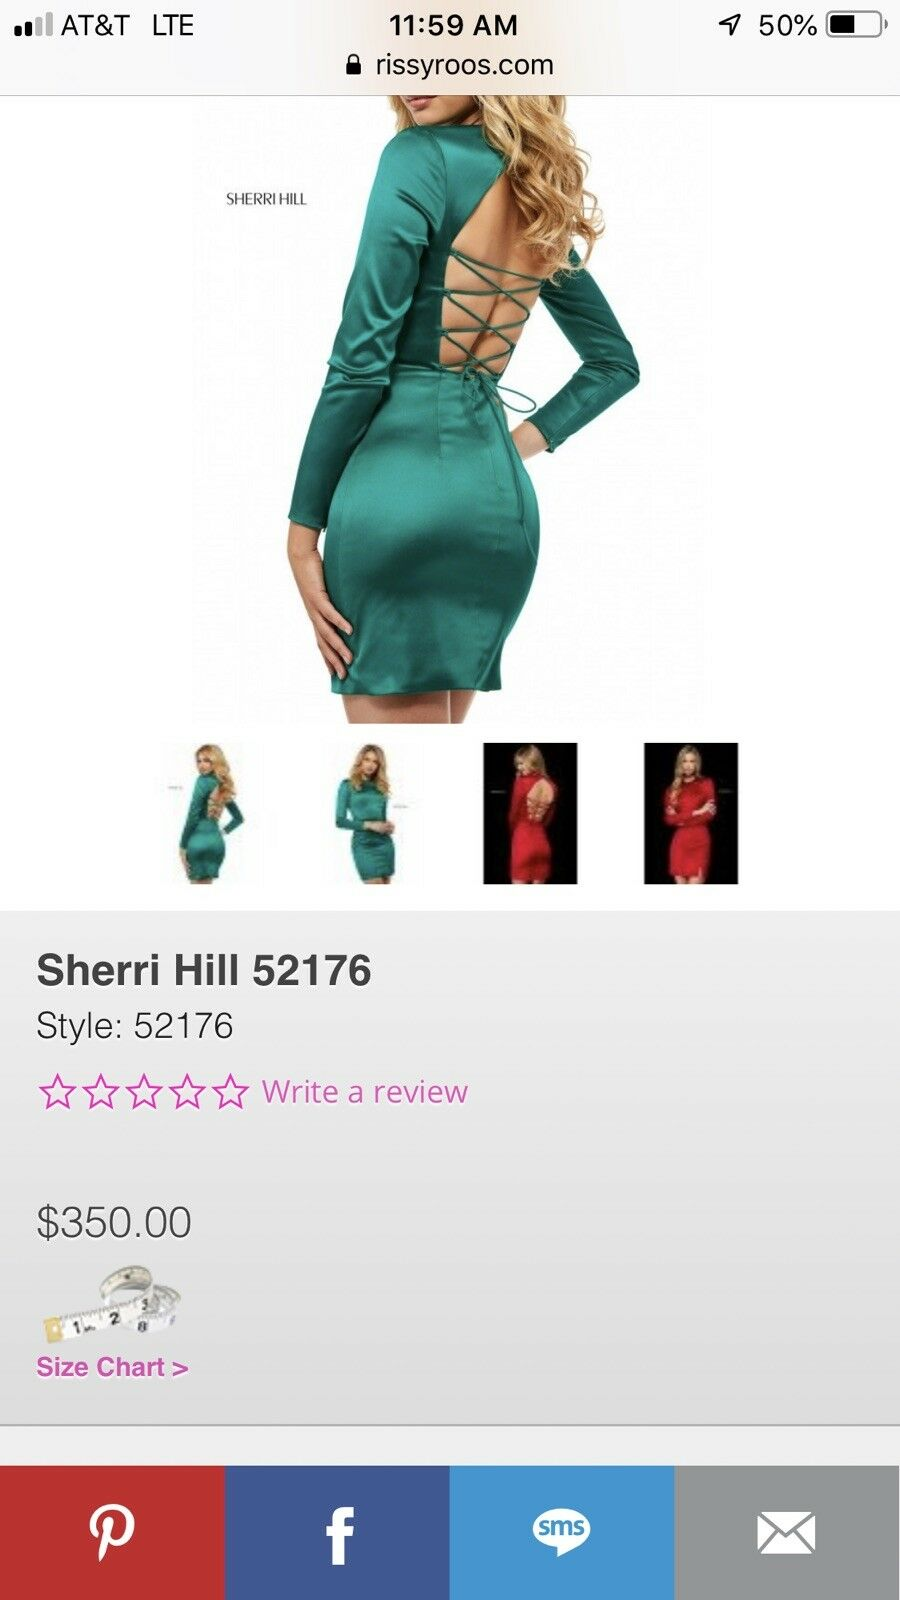 Sherri Hill 52176- Only Worn For One Hour